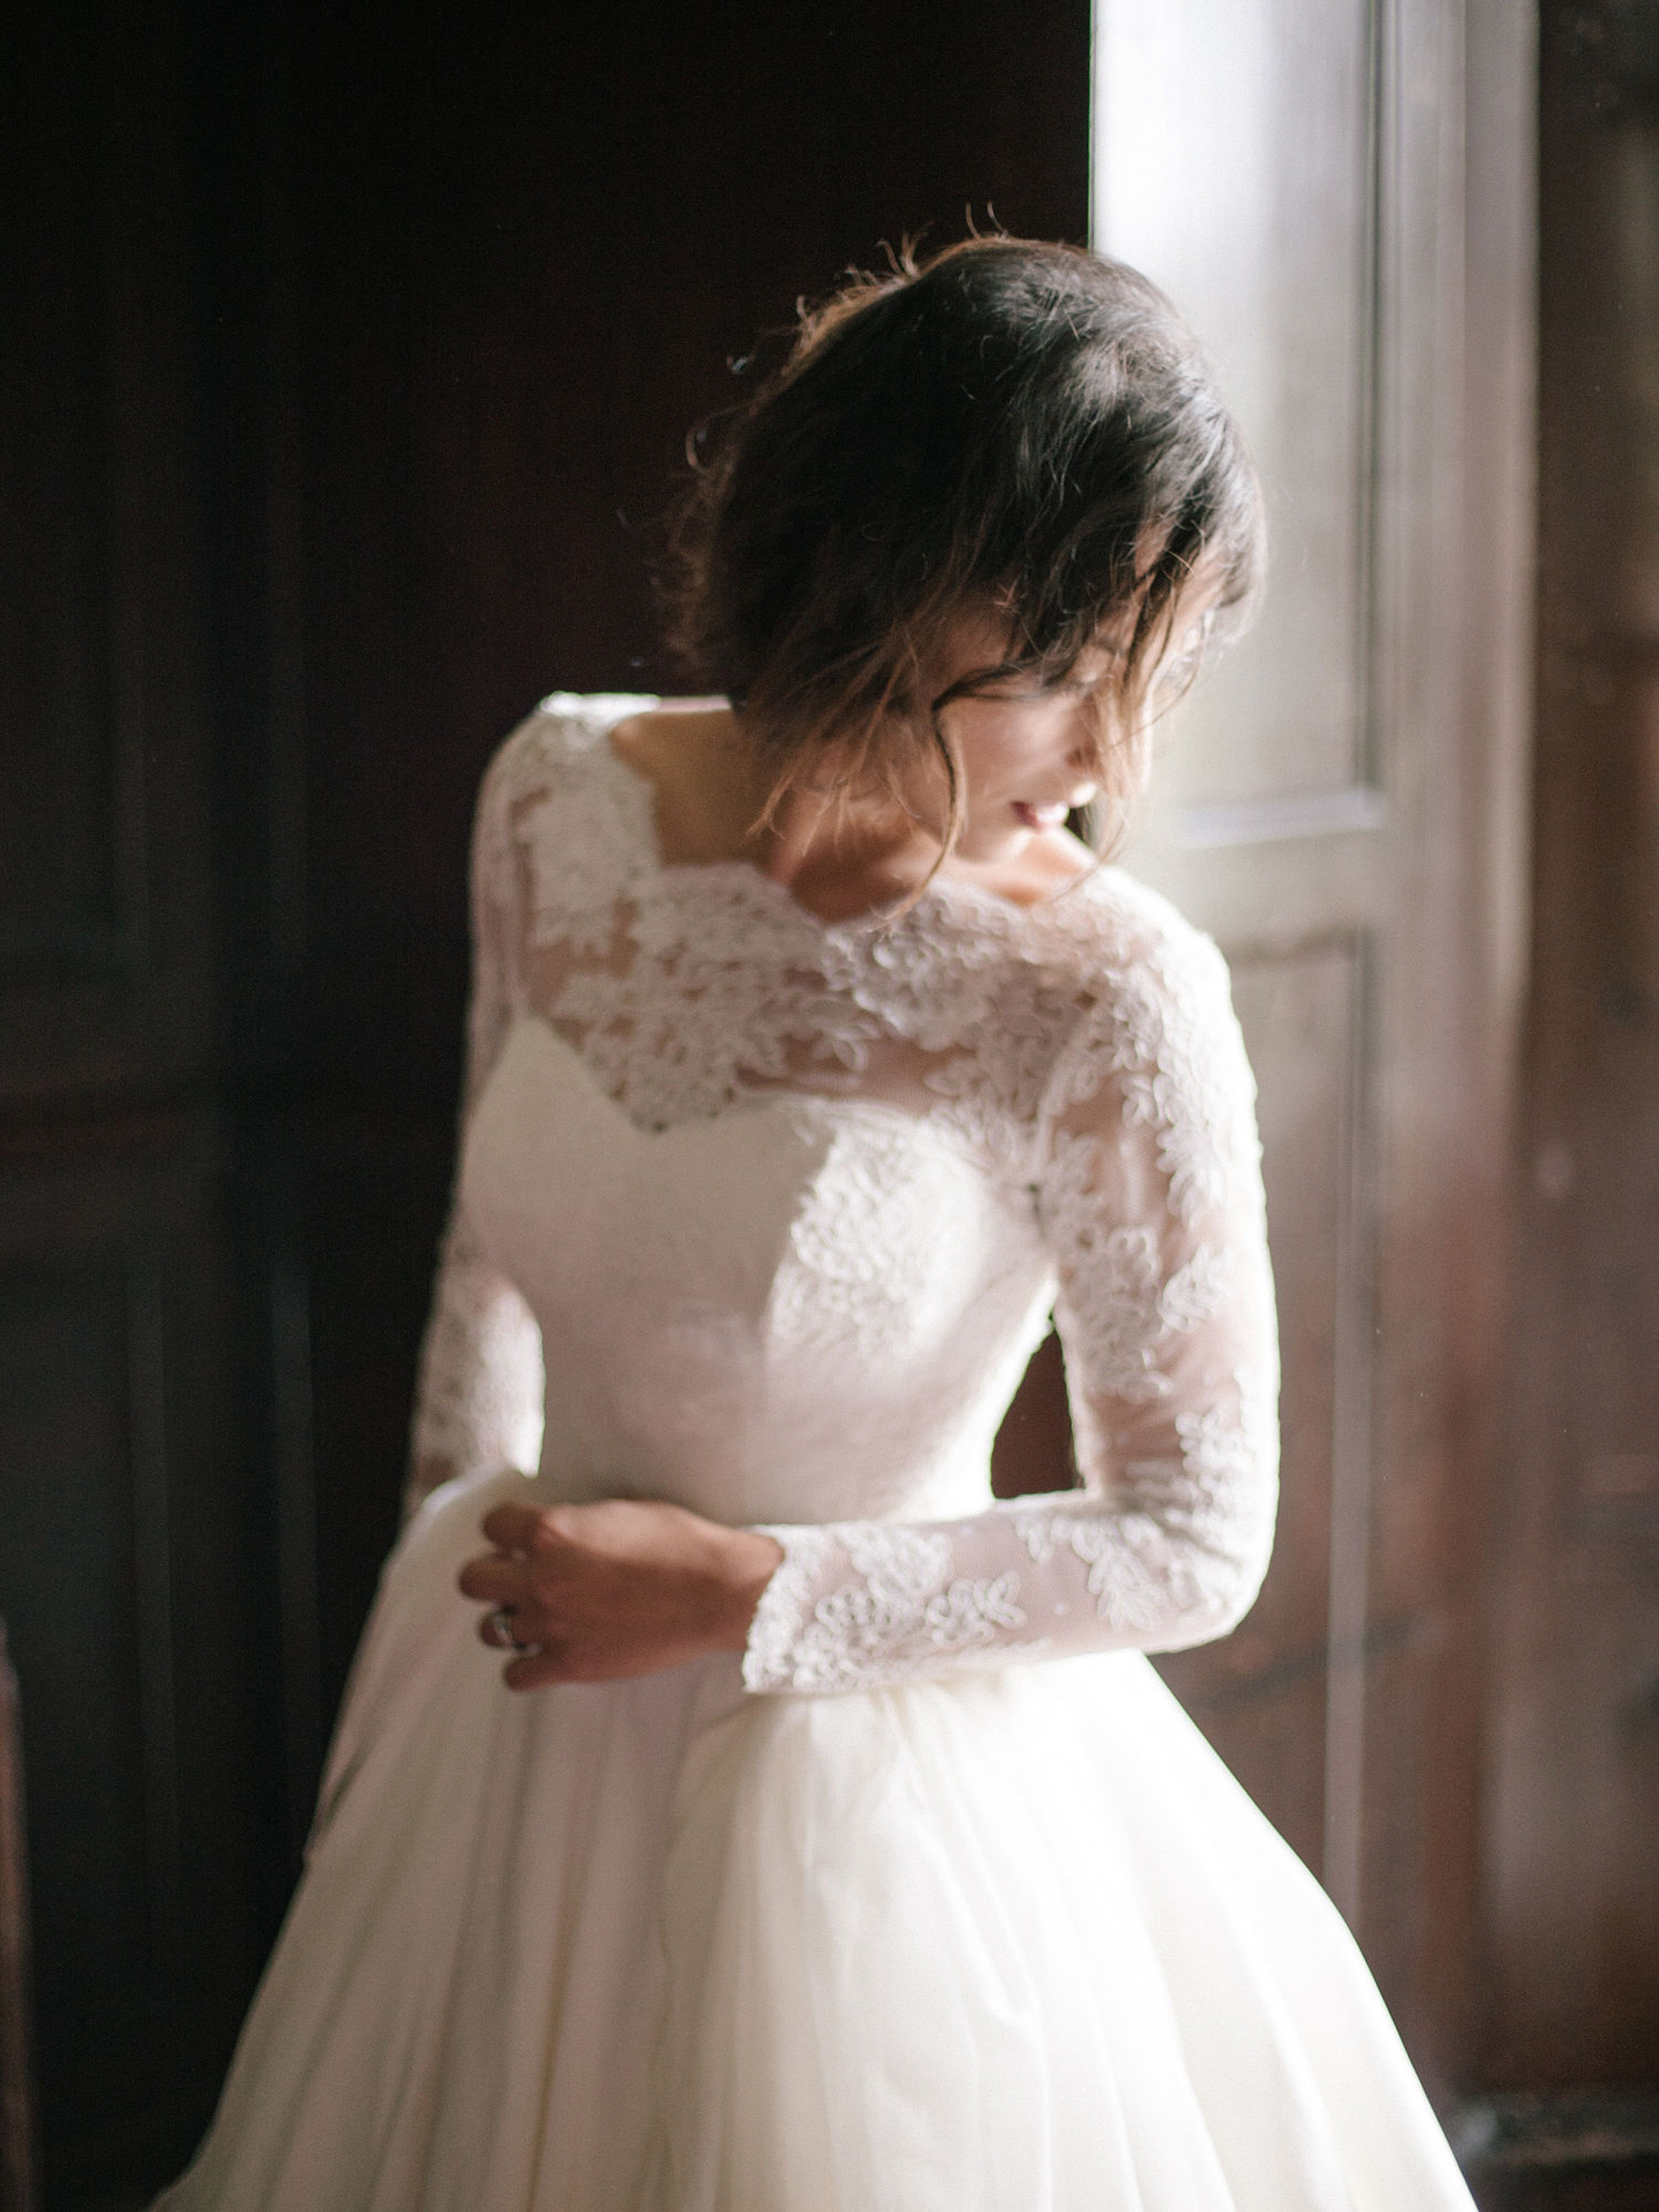 Caroline Arthur wedding dress designer